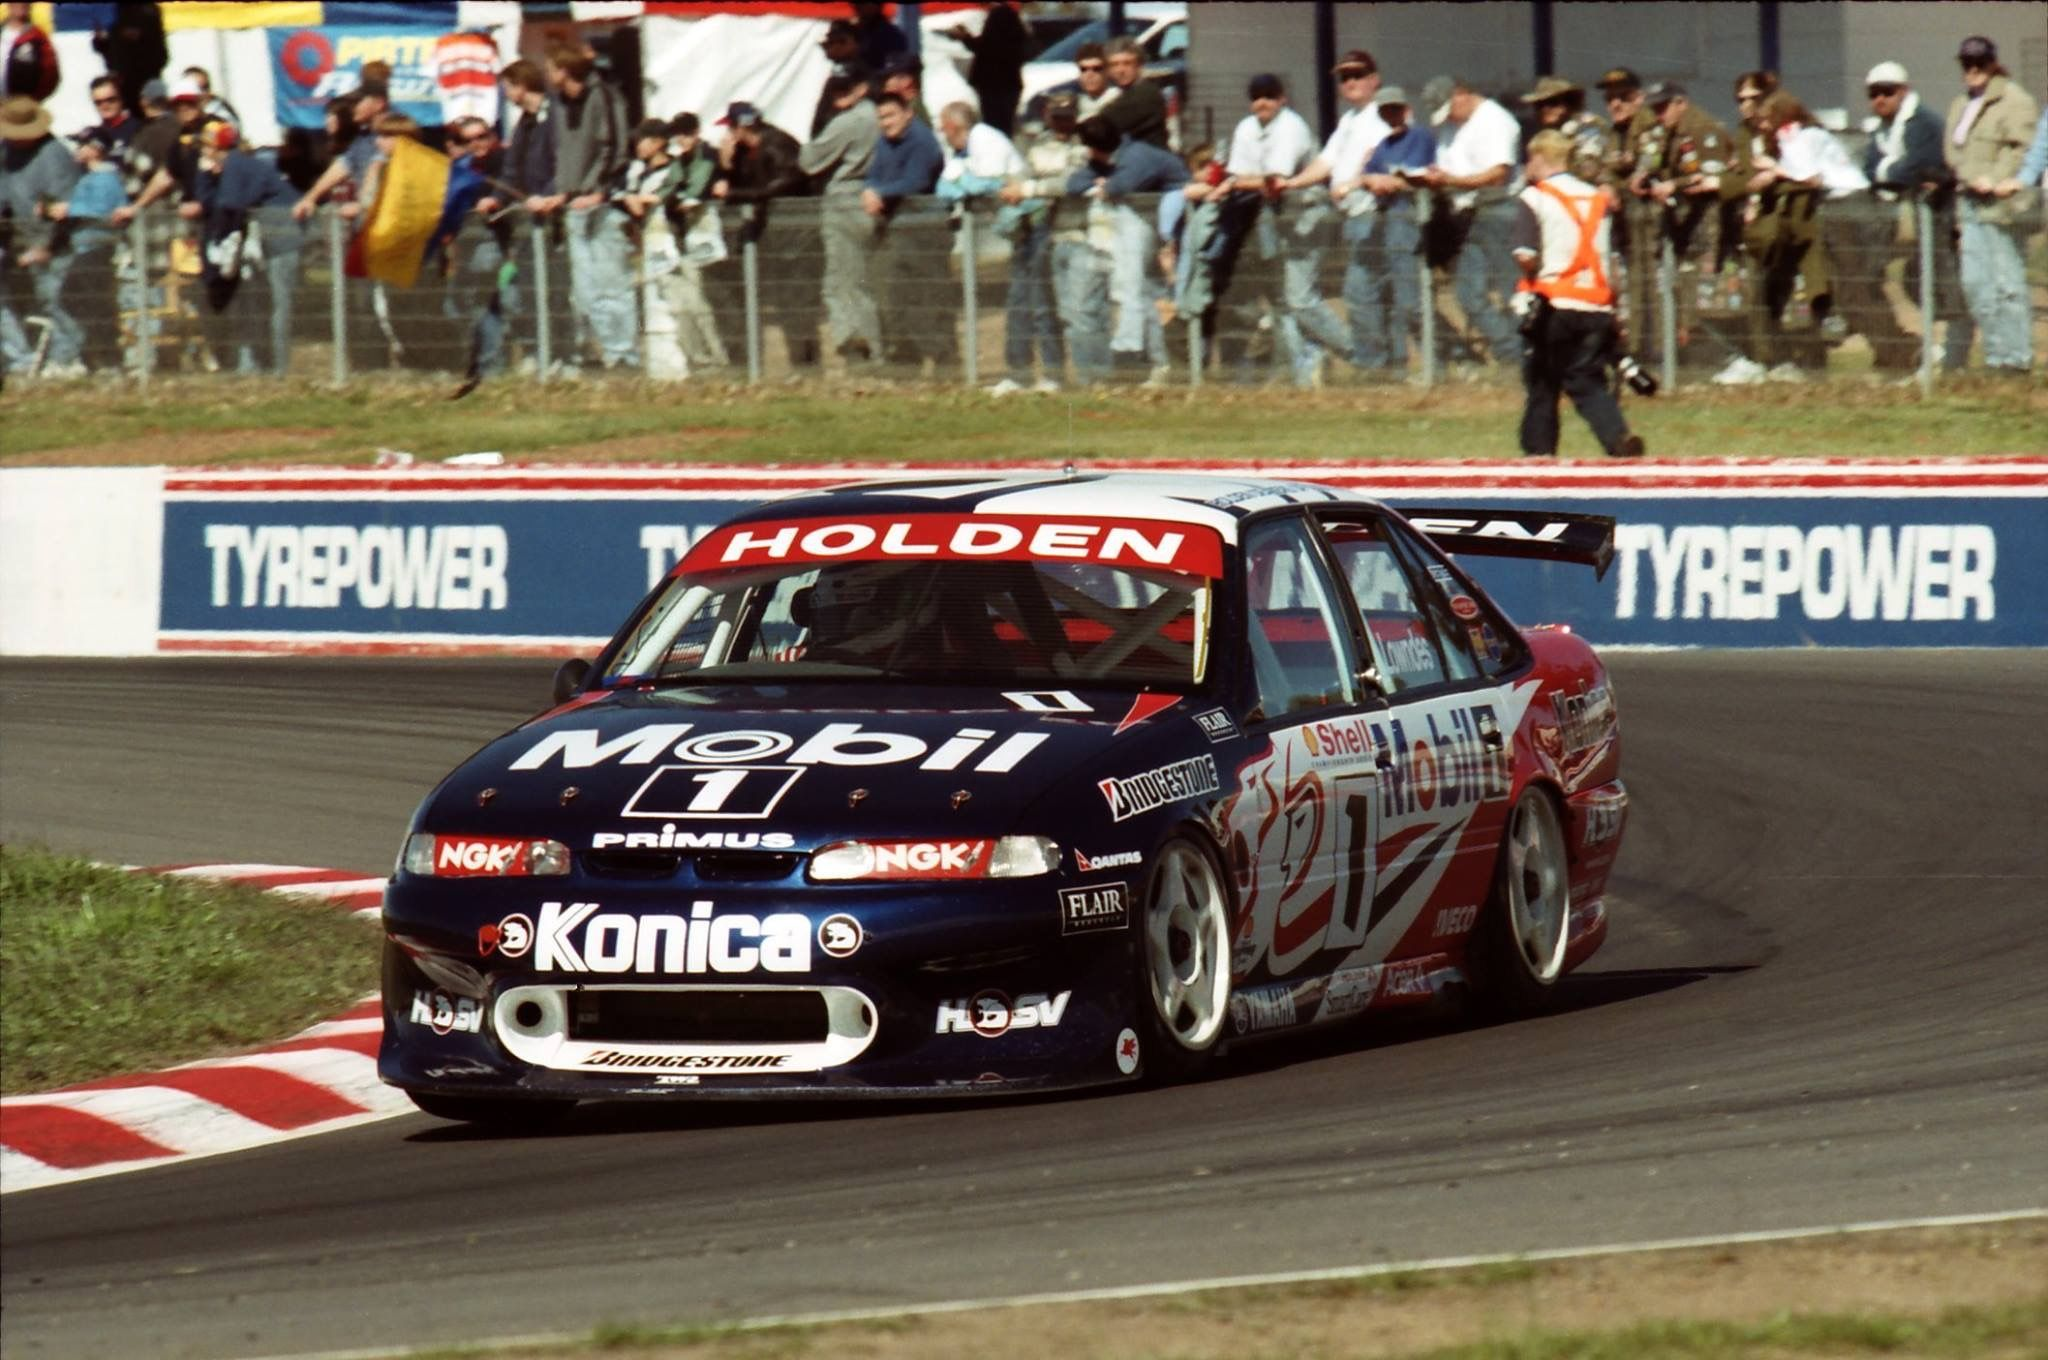 Pin by Andrew Gloistein on Holden Racing Team Wallpapers | Pinterest ...